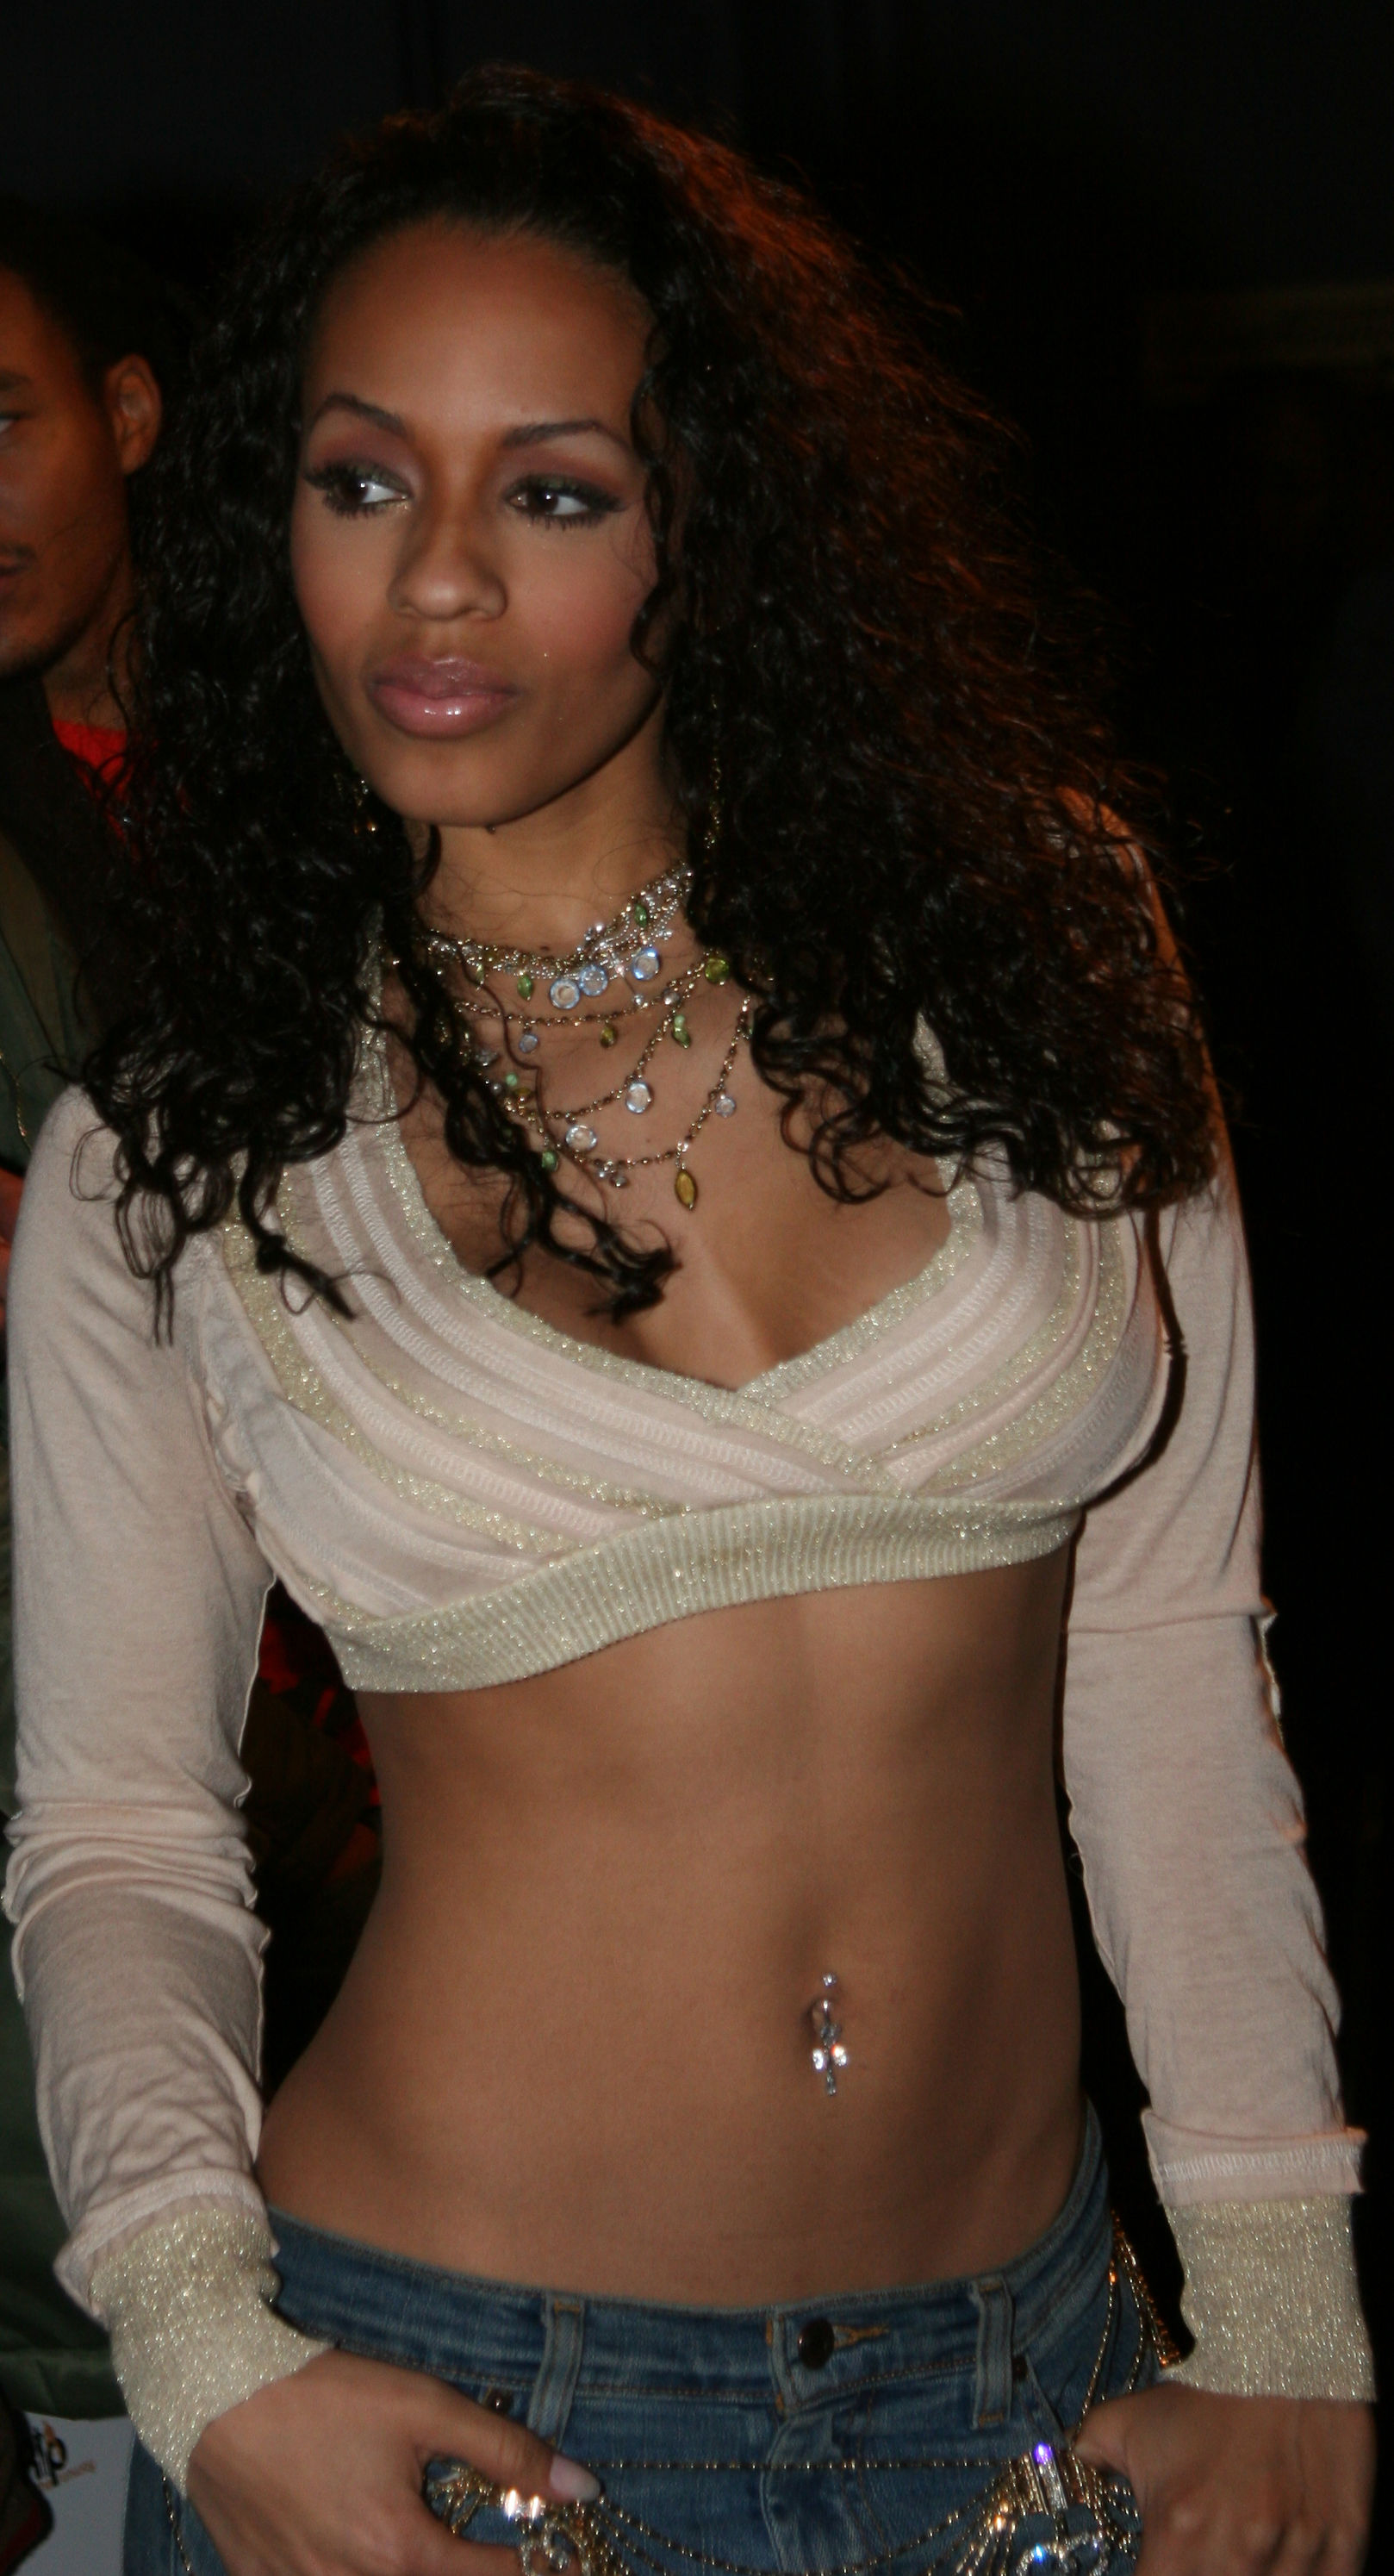 Photo of Melyssa Ford: Canadian-American hip-hop model, actress, and television personality